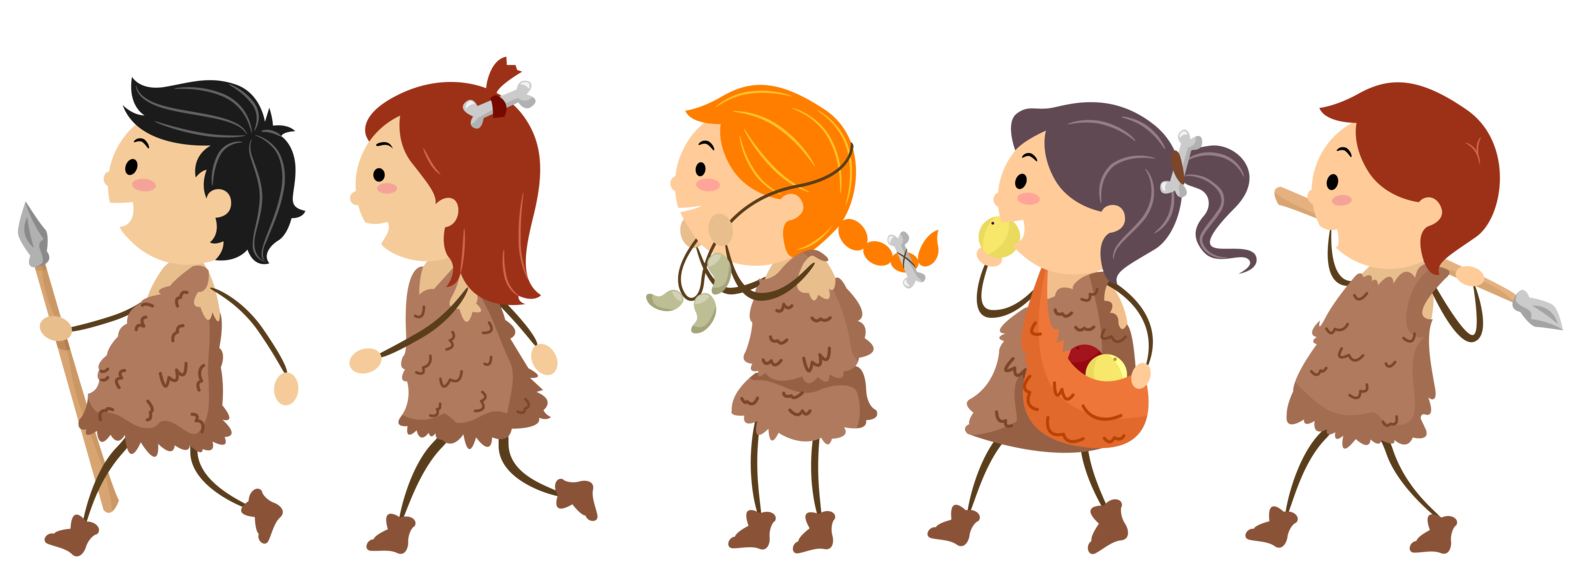 Stone Age for kids - Neolithic People PNG